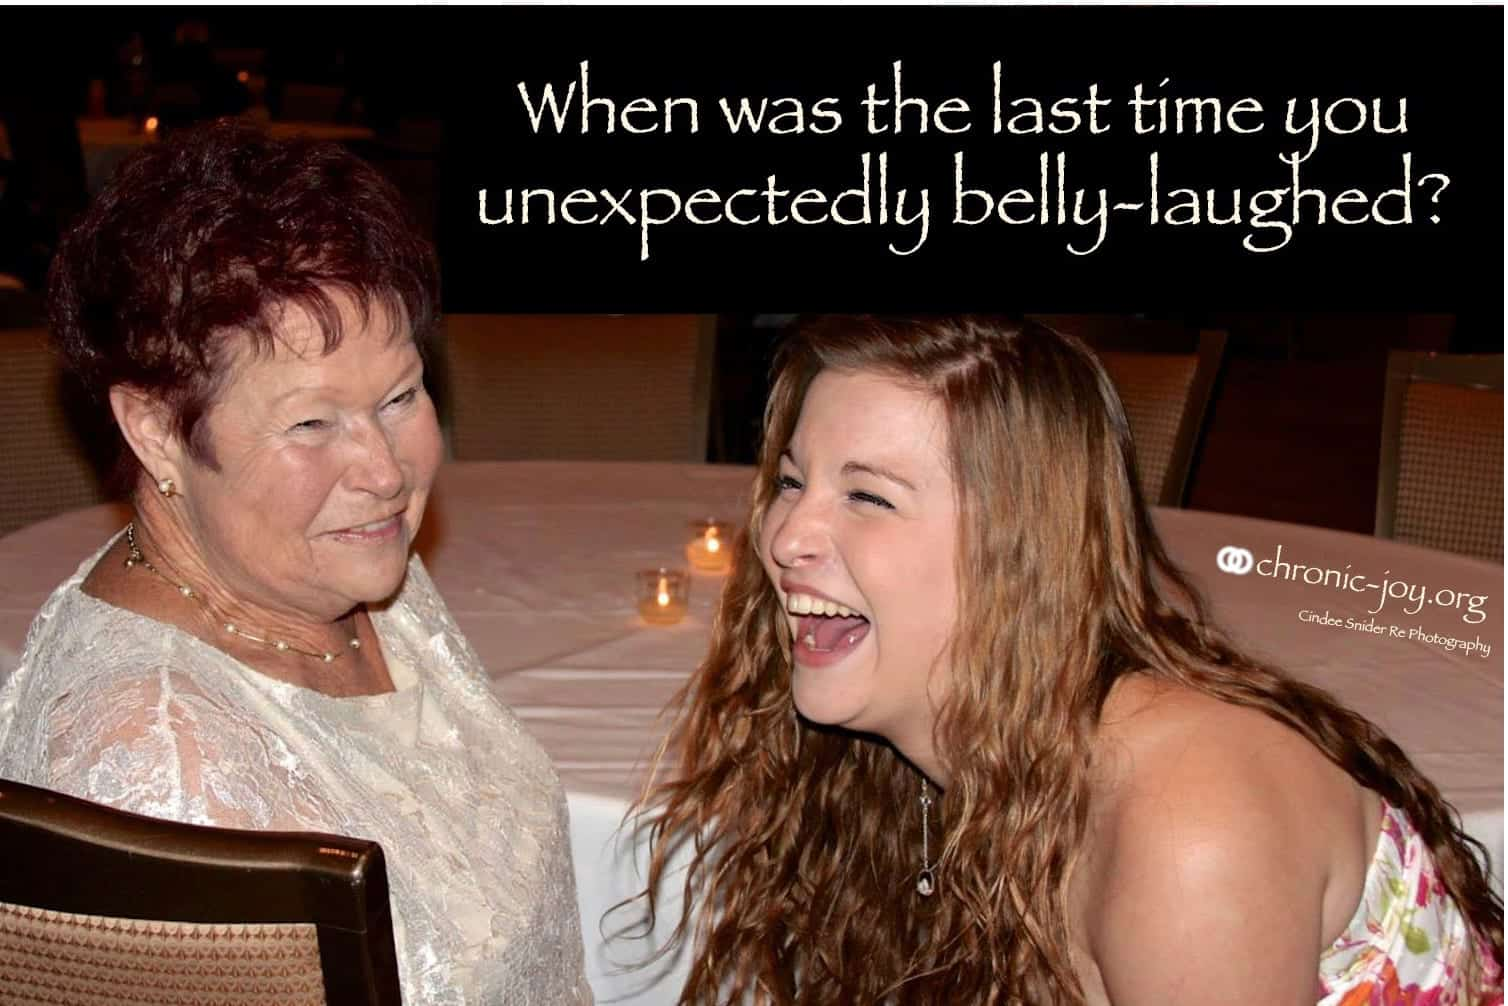 When was the last time you laughed?